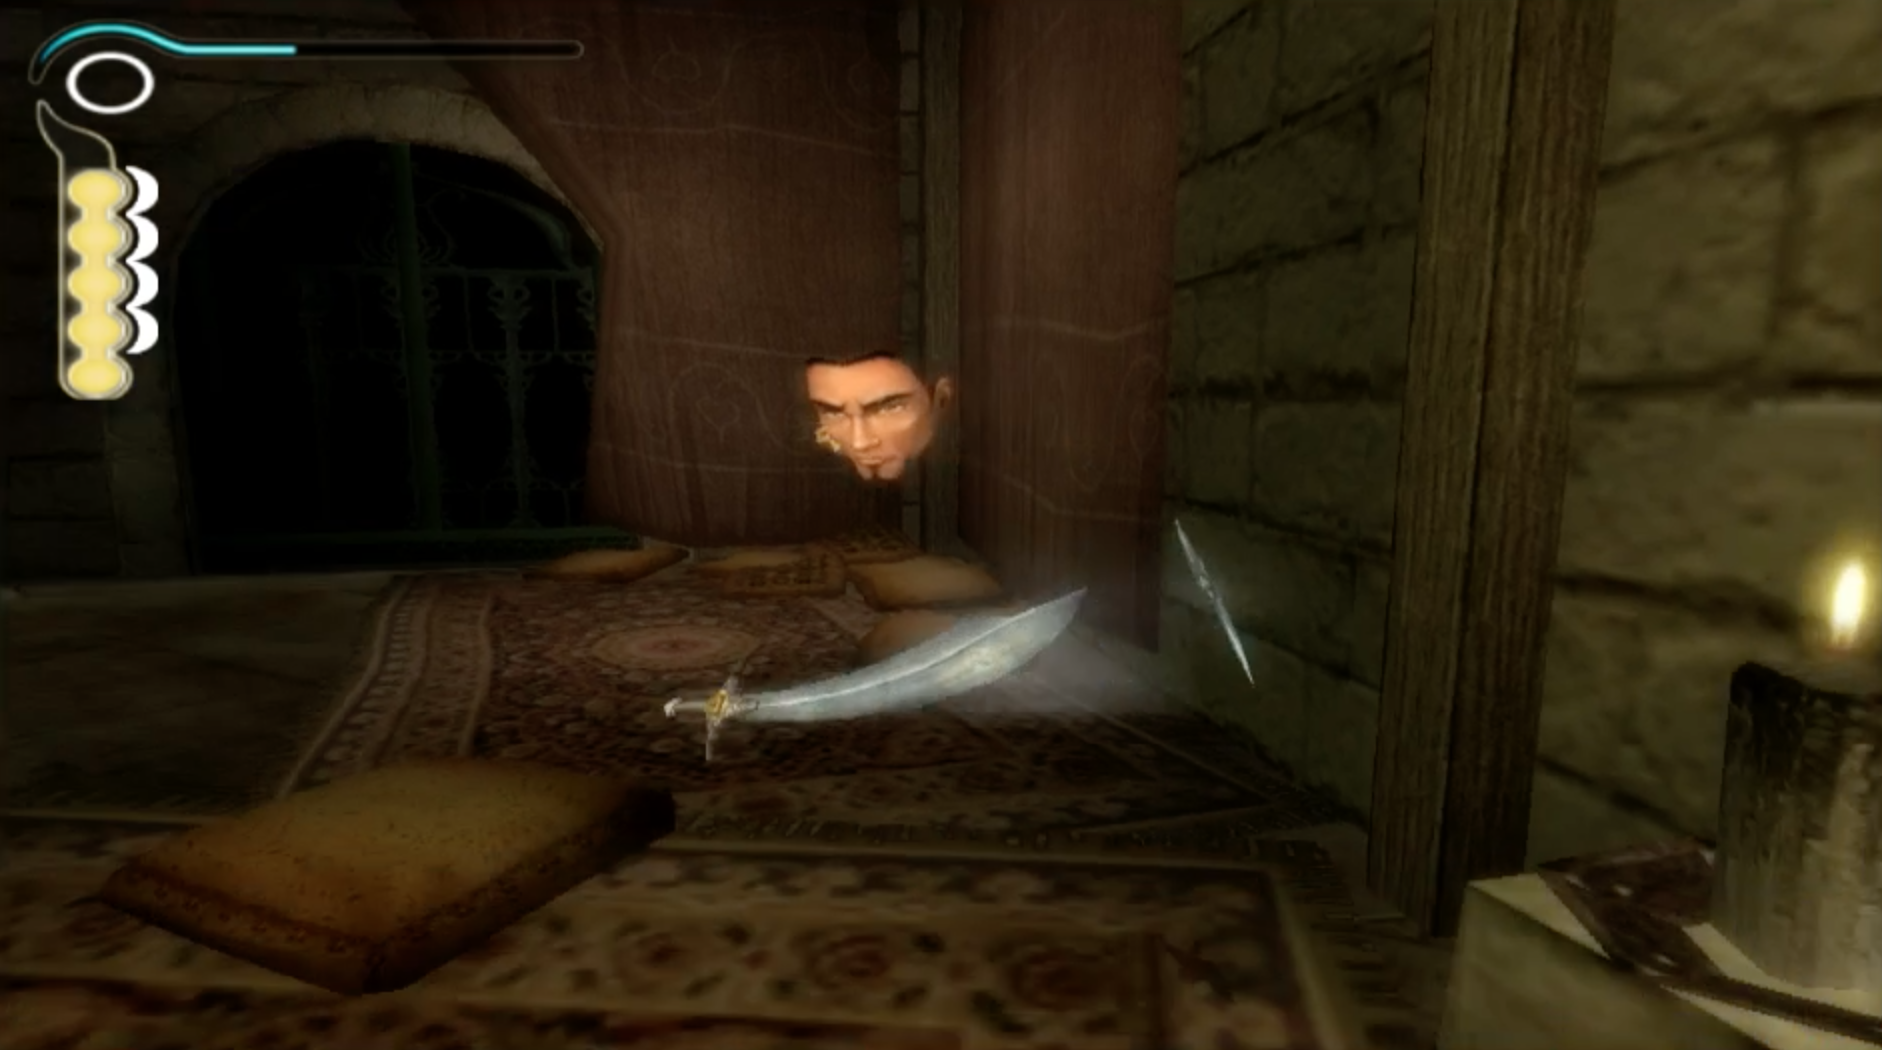 The Prince of Persia speedrun where absolutely everything went wrong